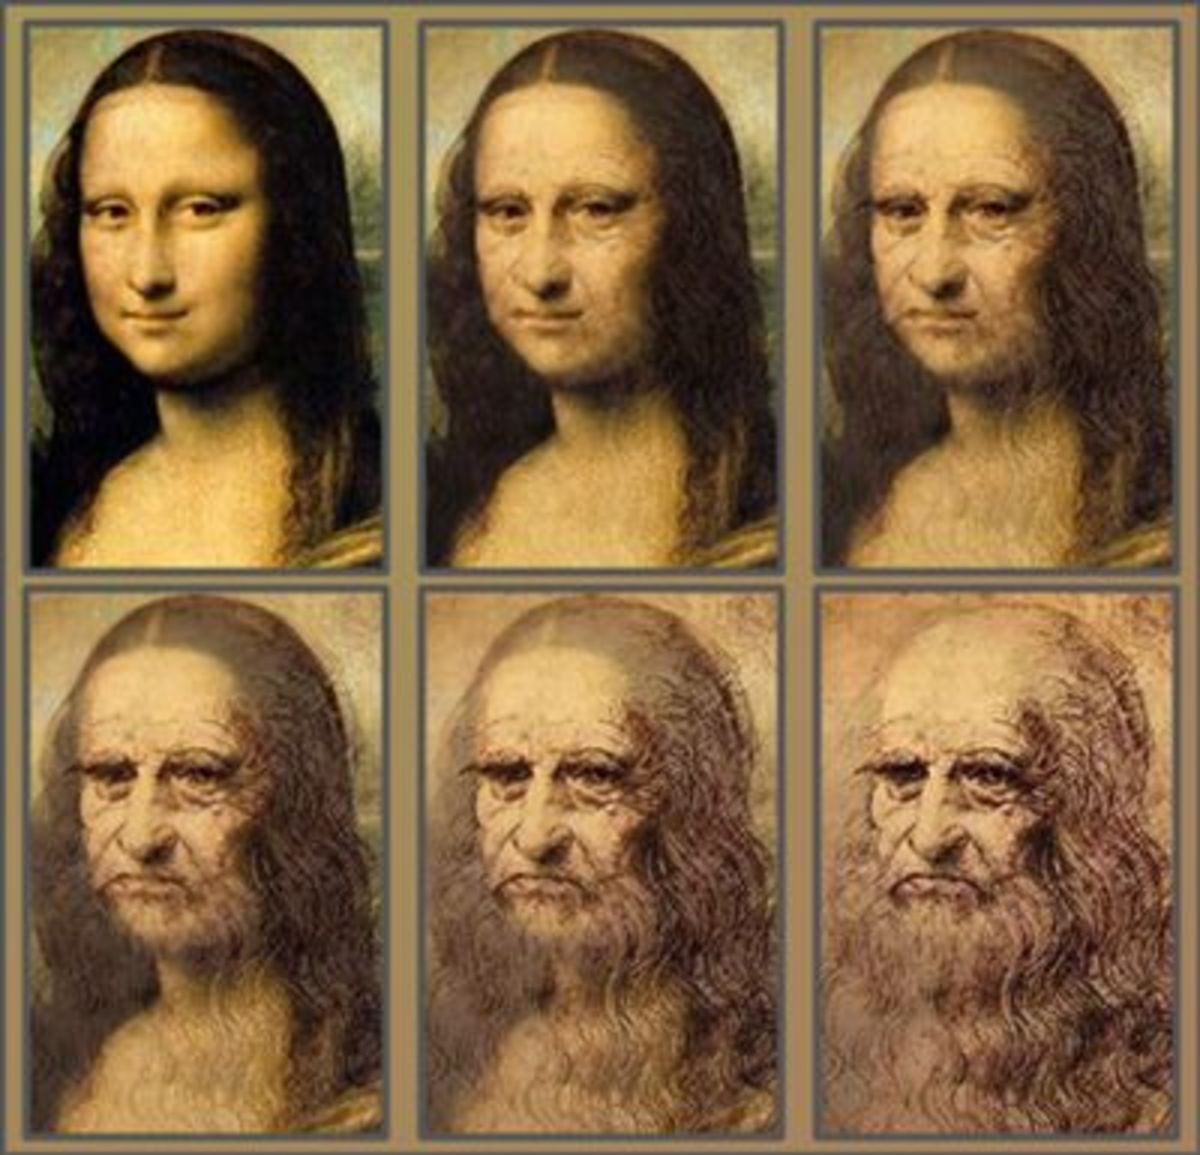 Some see a striking resemblance between the artist and his sitter. Some even believe it could be a self-portrait of Da Vinci as a woman